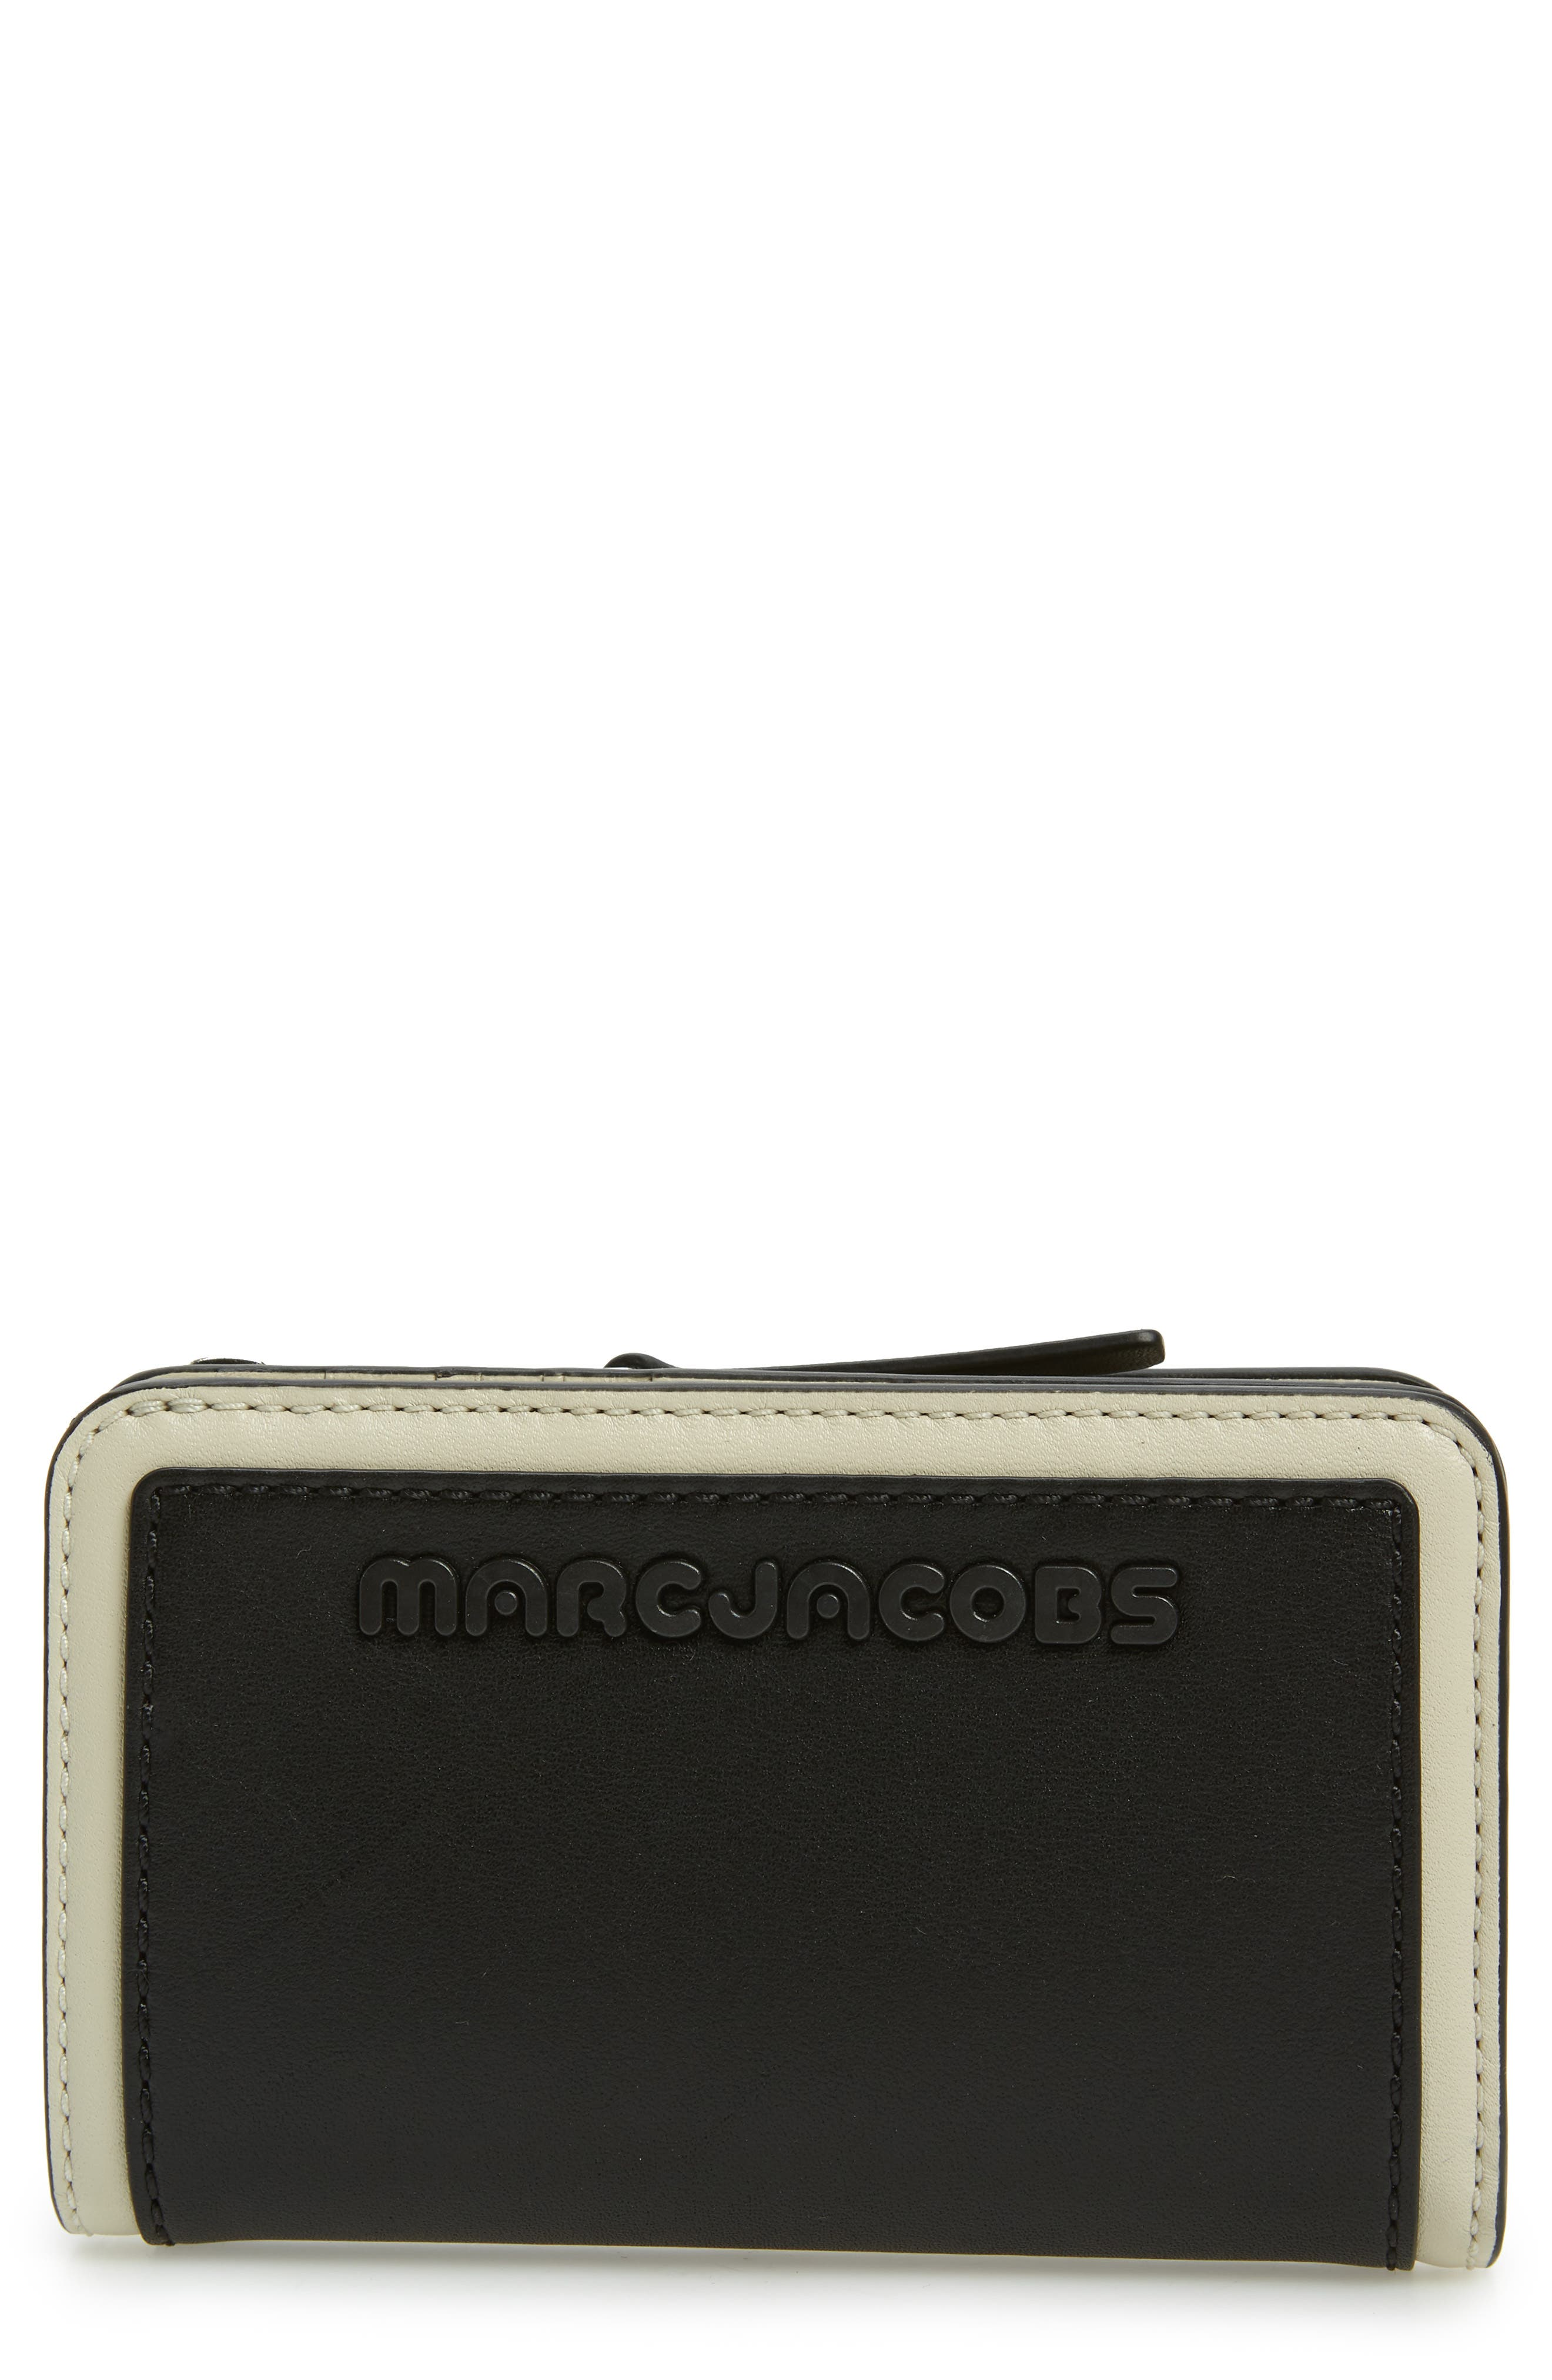 Sport Compact Leather Wallet,                             Main thumbnail 1, color,                             BLACK/ WHITE